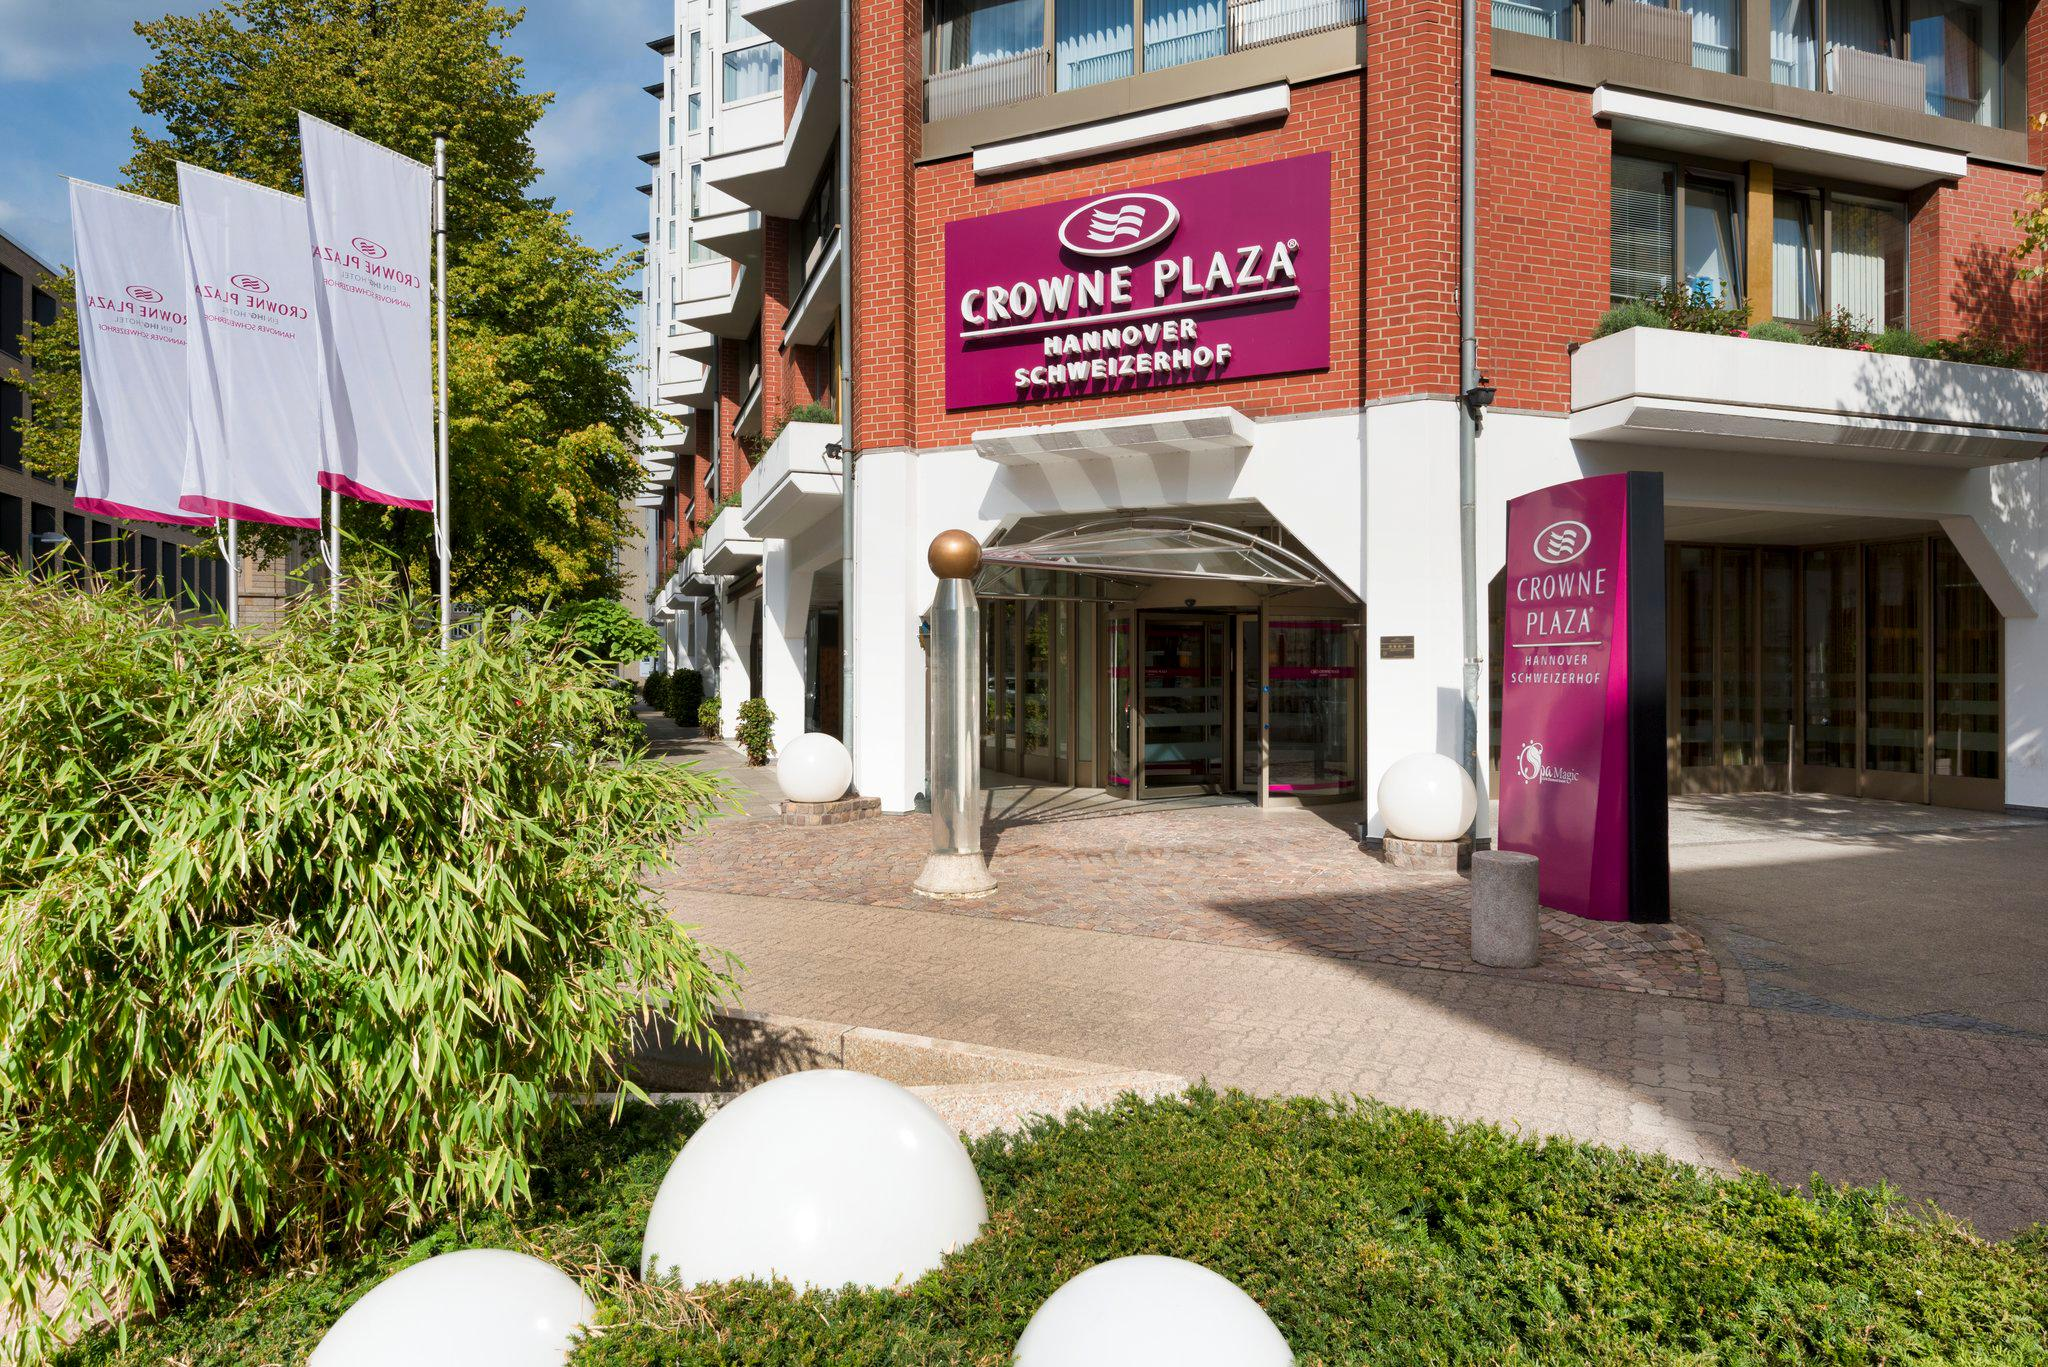 Crowne Plaza Hannover, Hinueberstrasse 6 in Hannover